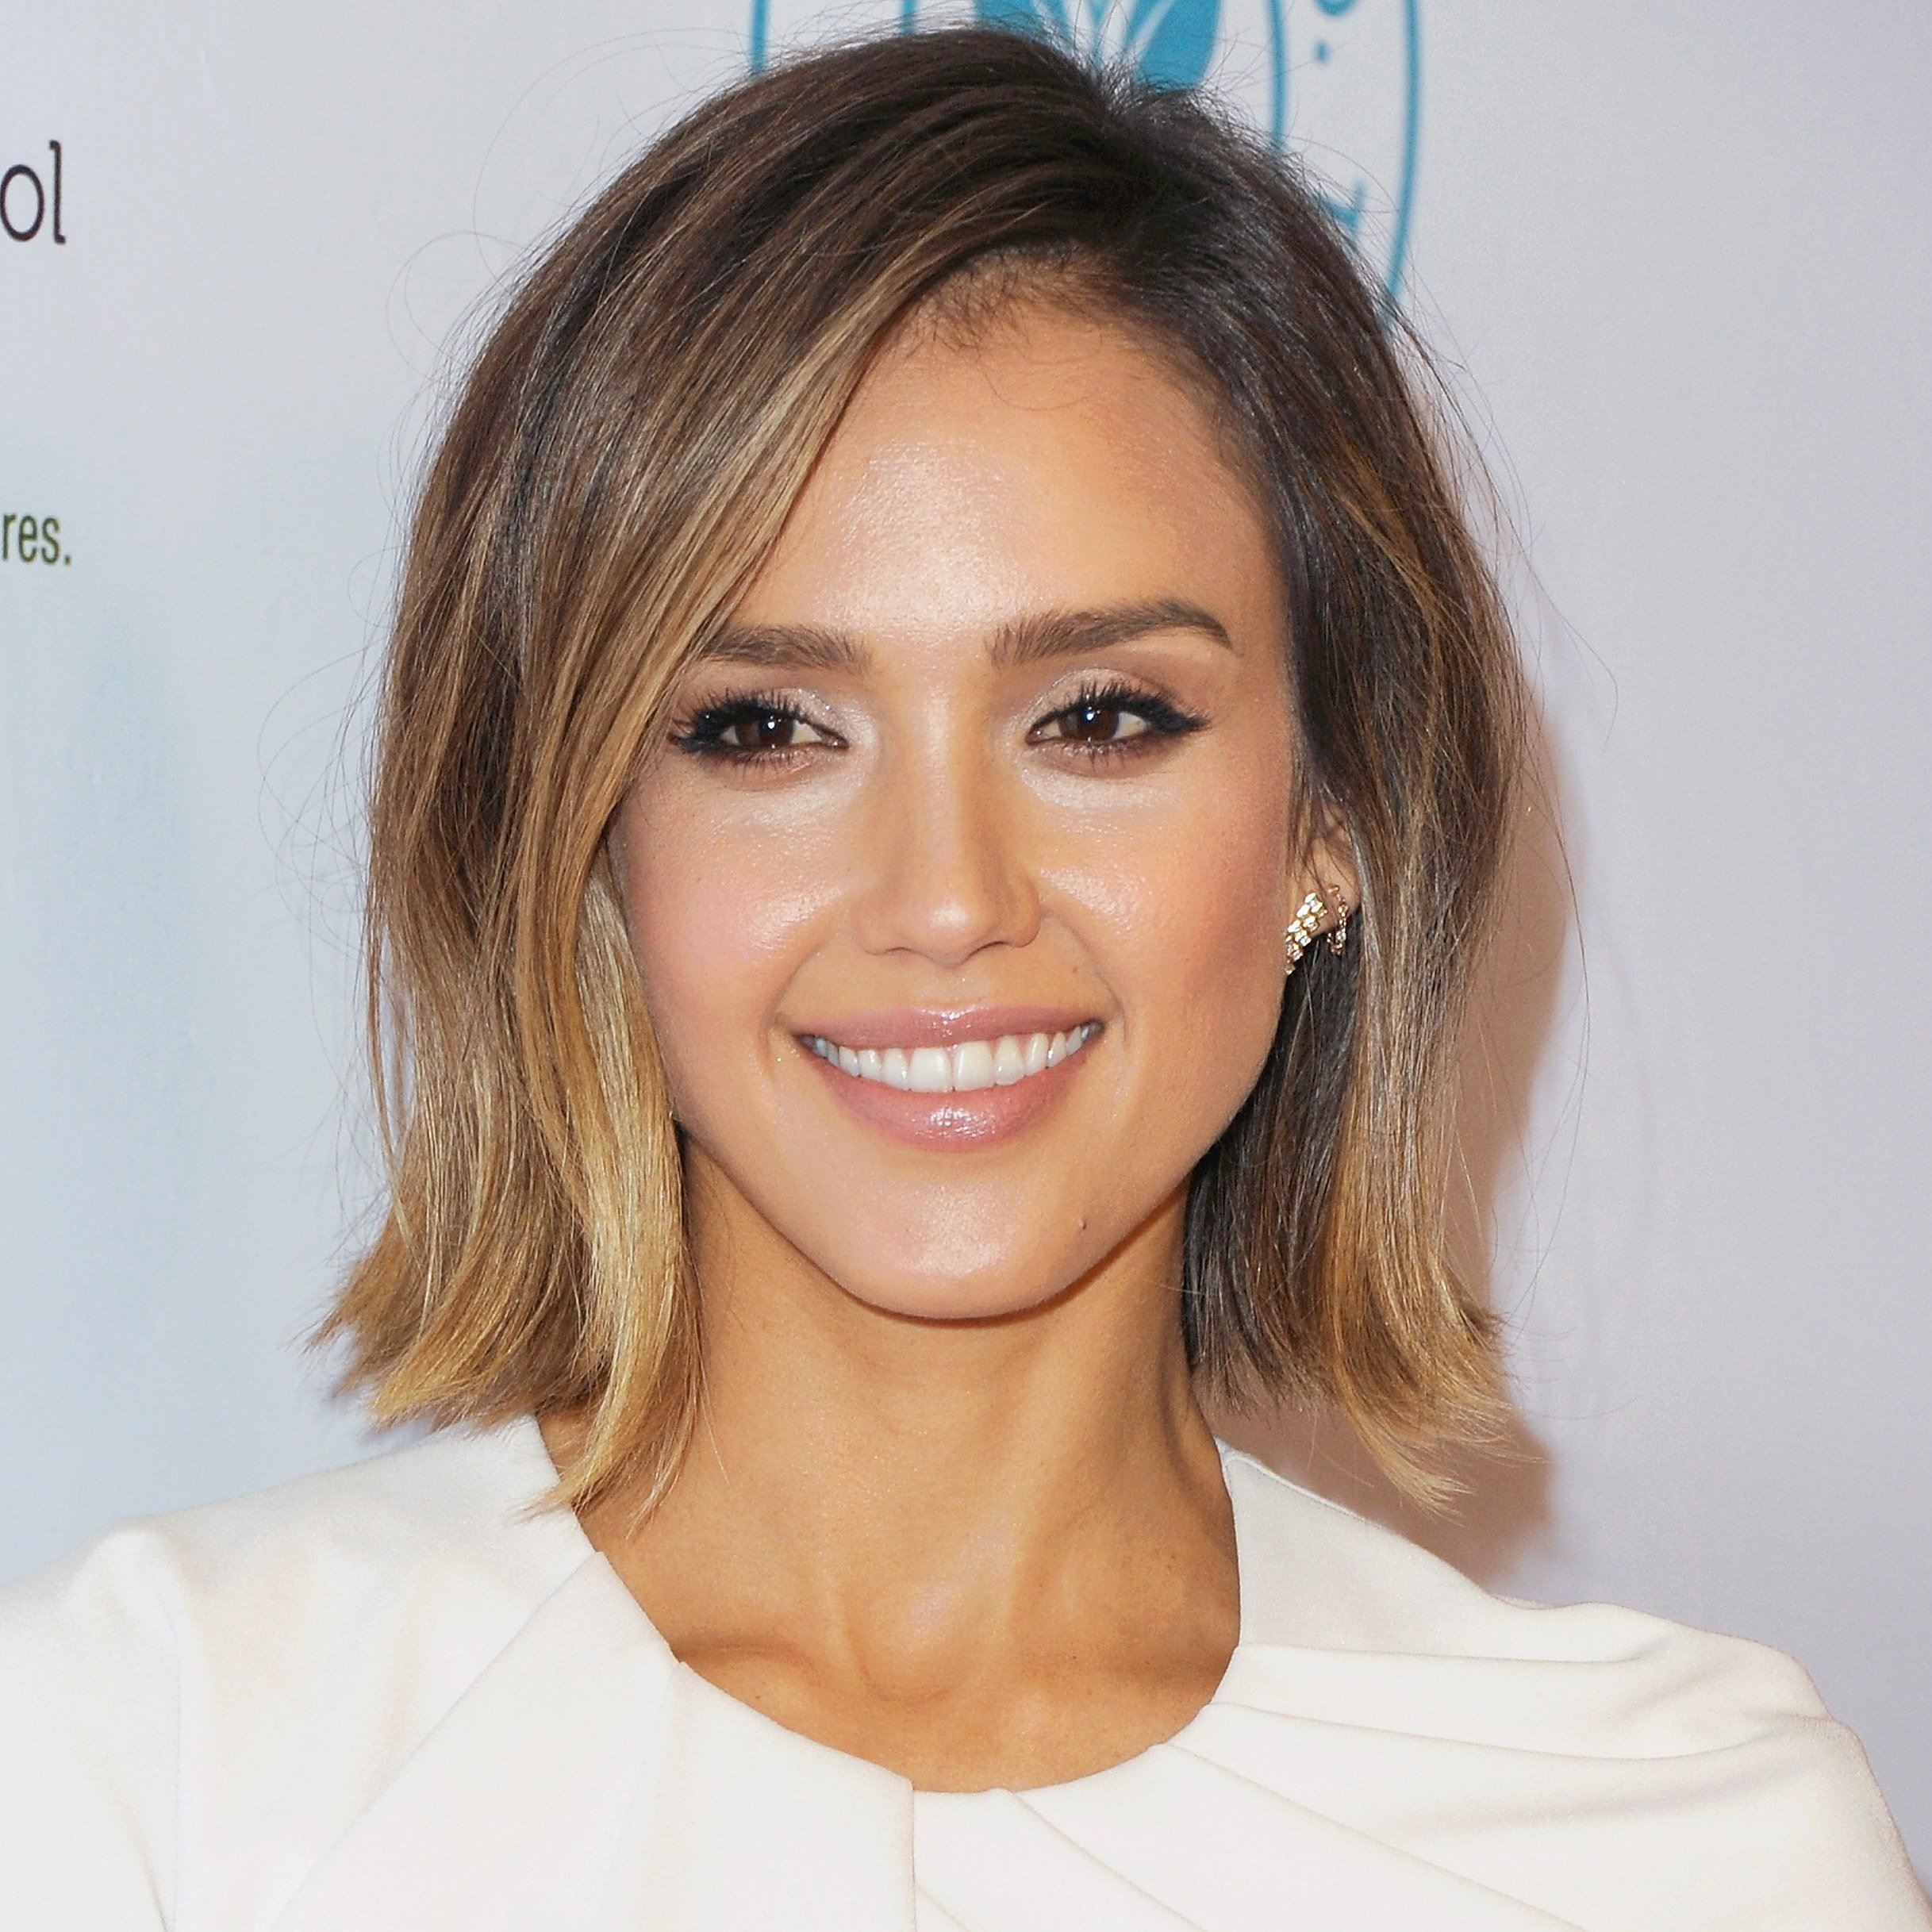 The Best 10 Hairstyles That Make You Look 10 Years Younger Allure Pictures Original 1024 x 768